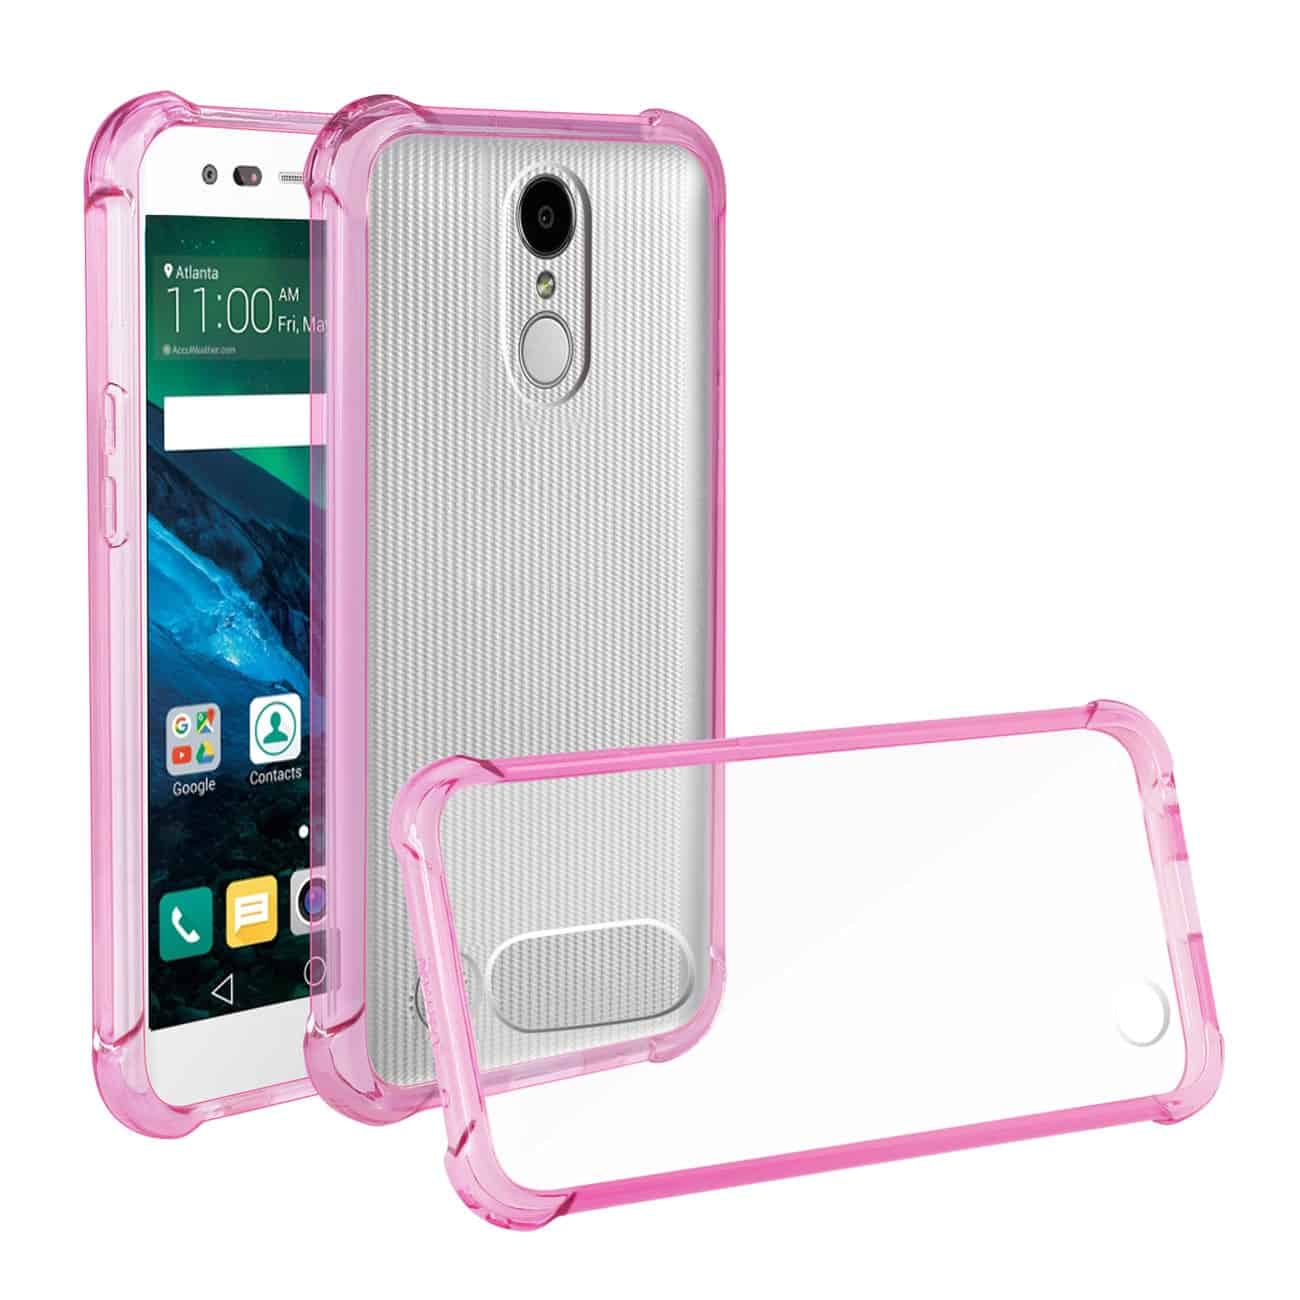 LG FORTUNE/ PHOENIX 3/ ARISTO CLEAR BUMPER CASE WITH AIR CUSHION PROTECTION IN CLEAR HOT PINK